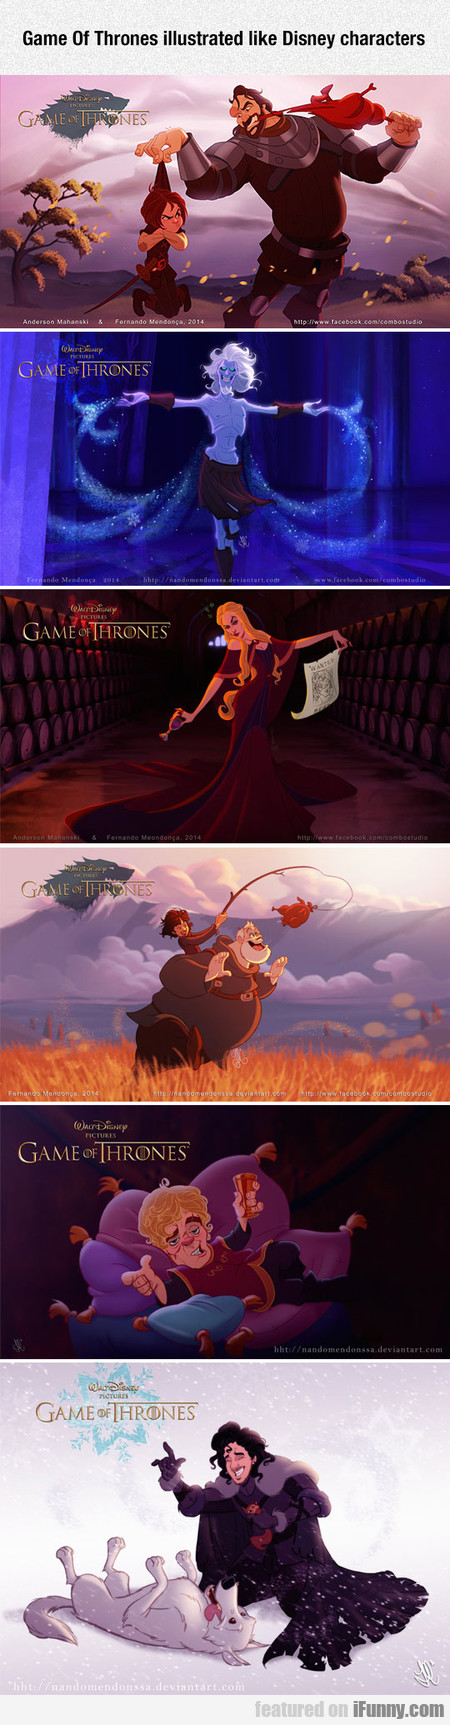 Game Of Thrones Illustrated Like Disney Characters